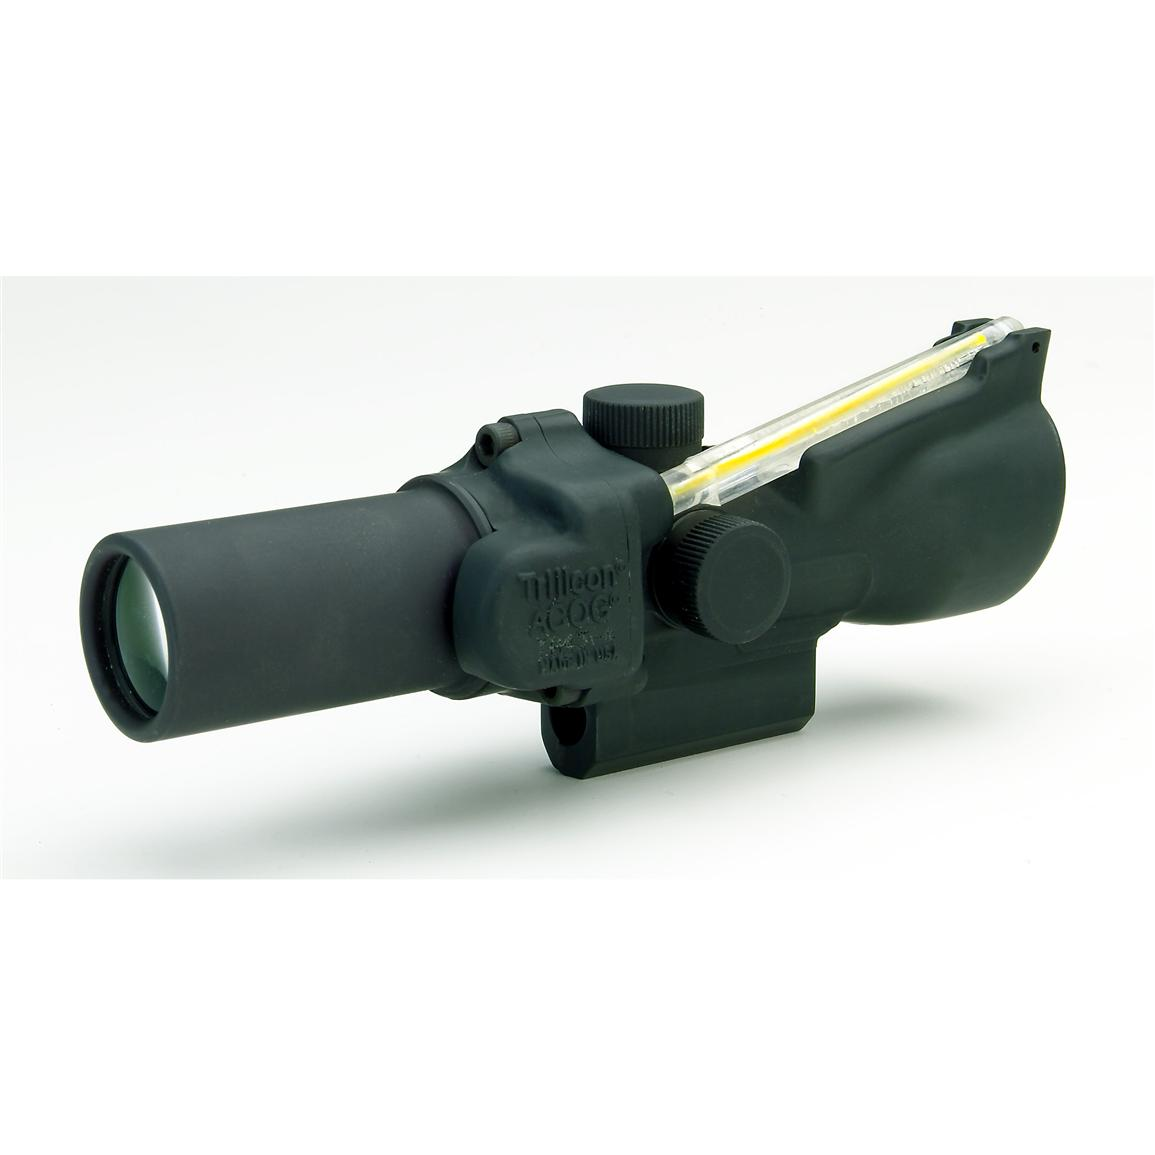 Trijicon ACOG 3.5x35 Red Dual Illumination Donut Reticle Scope and BAC